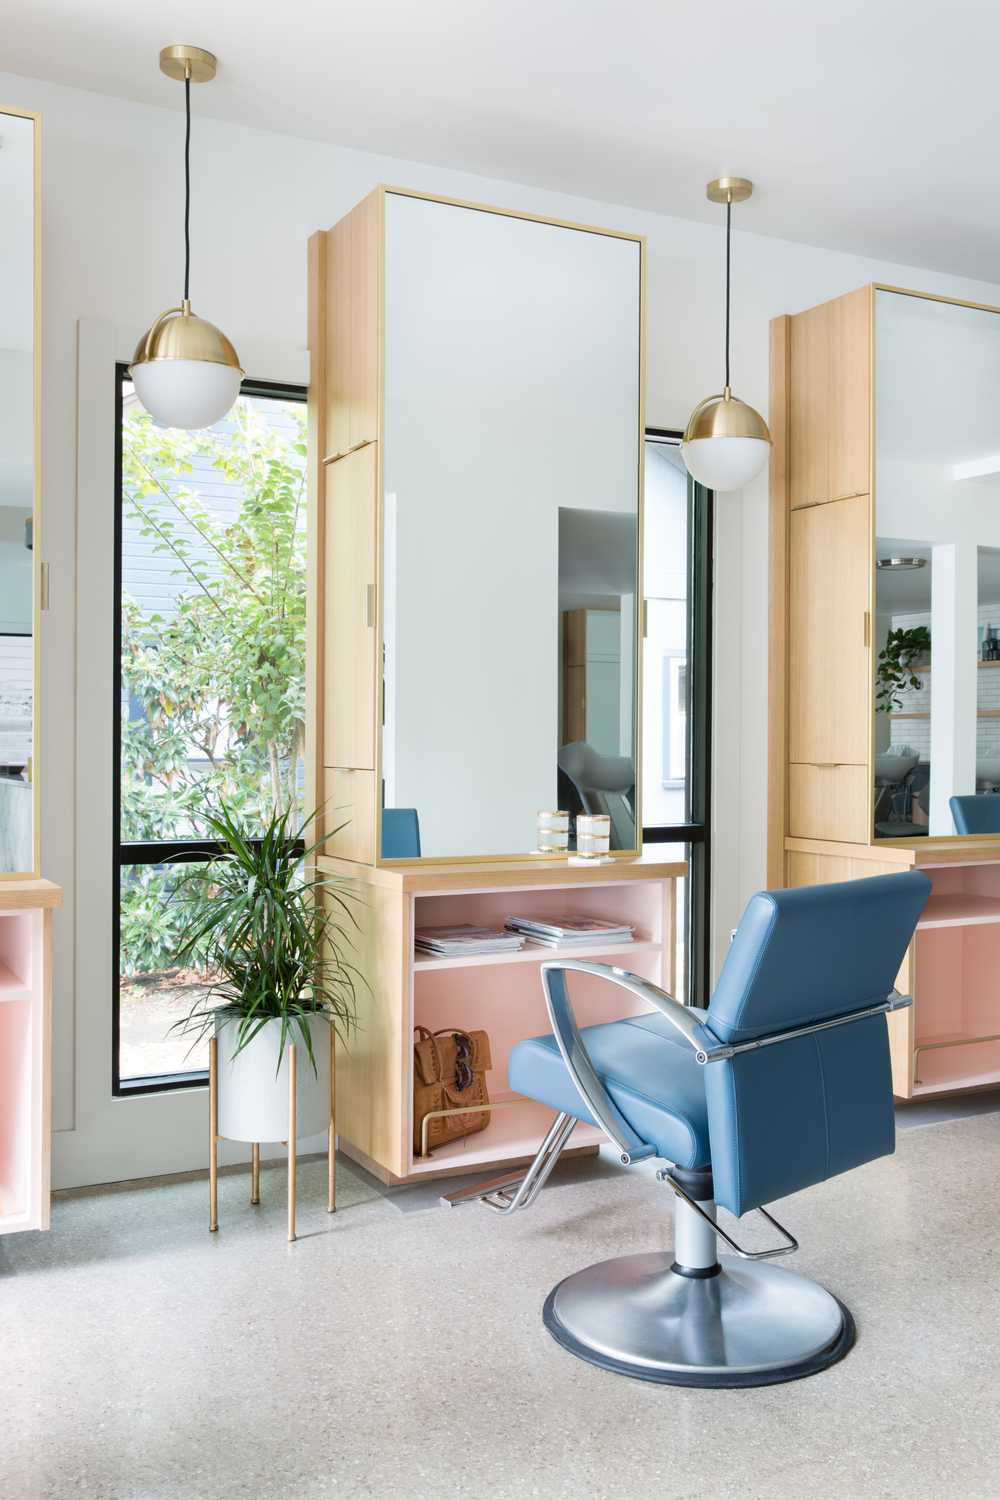 The blue chairs and the pink shelves at the stations in Mirror Mirror Salon in Austin, Texas, reflect the furniture color in the reception space.